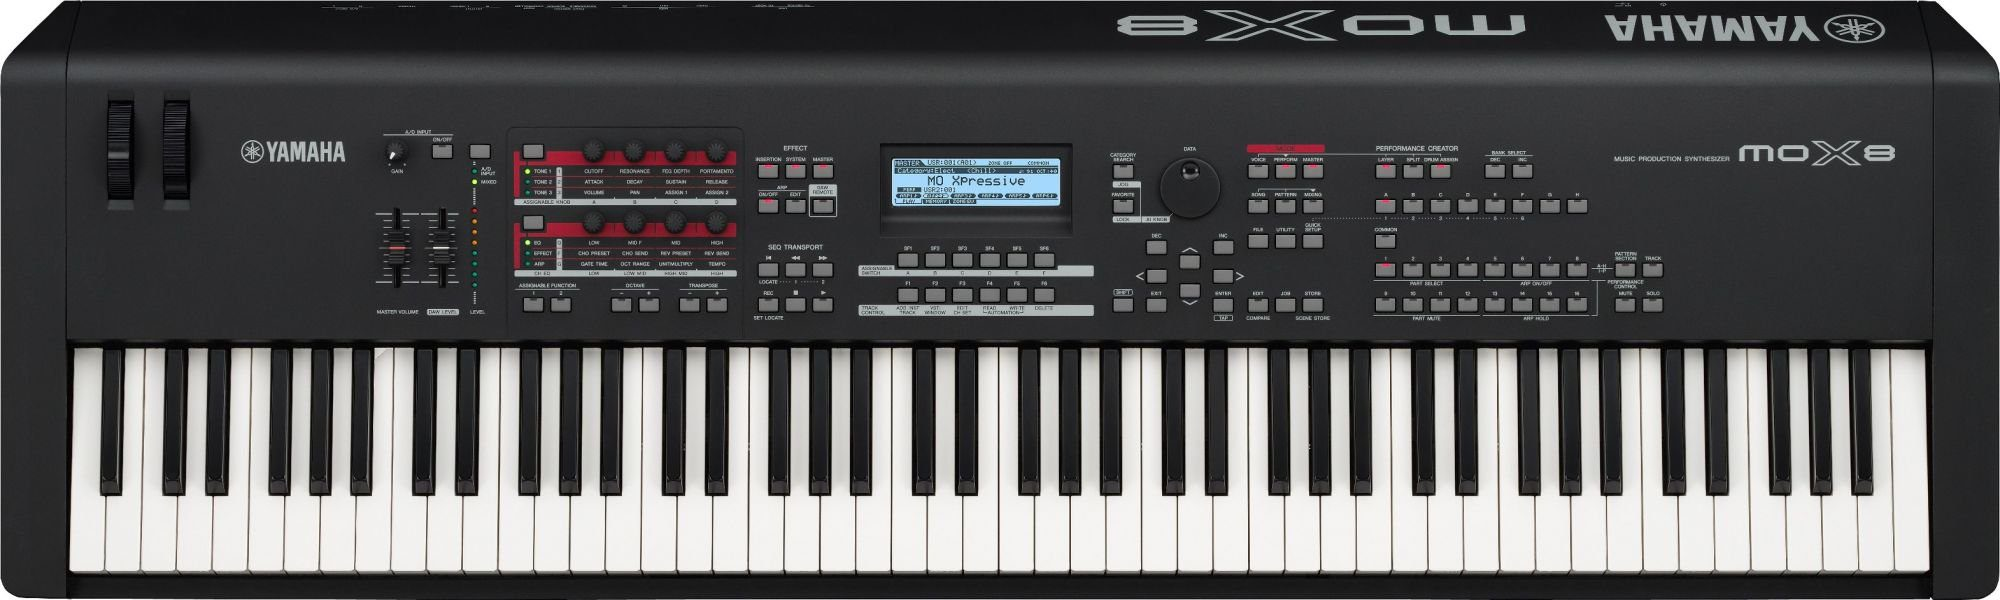 Yamaha Mox Keyboard Synthesizer  Key